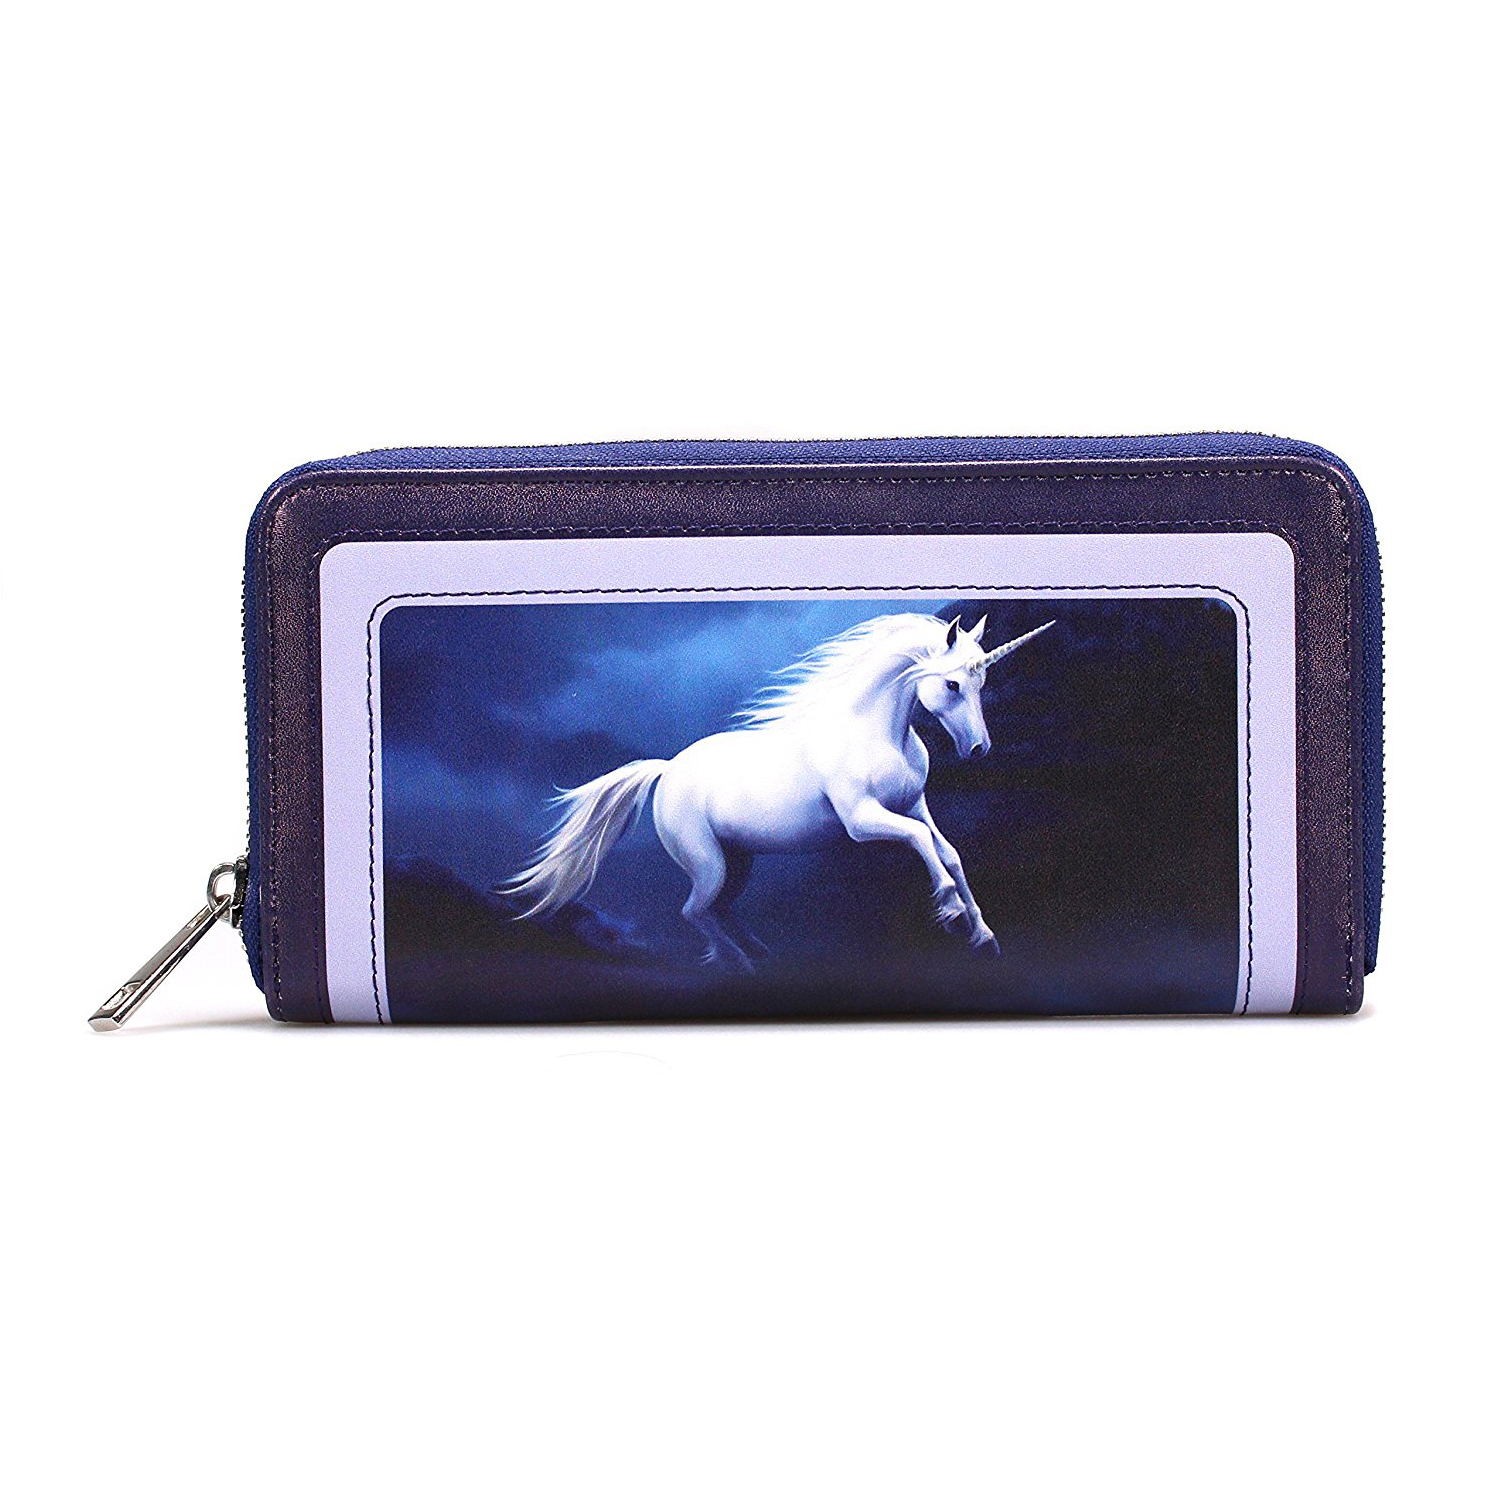 Anne Stokes Moonlight Unicorn Large Zipped Purse